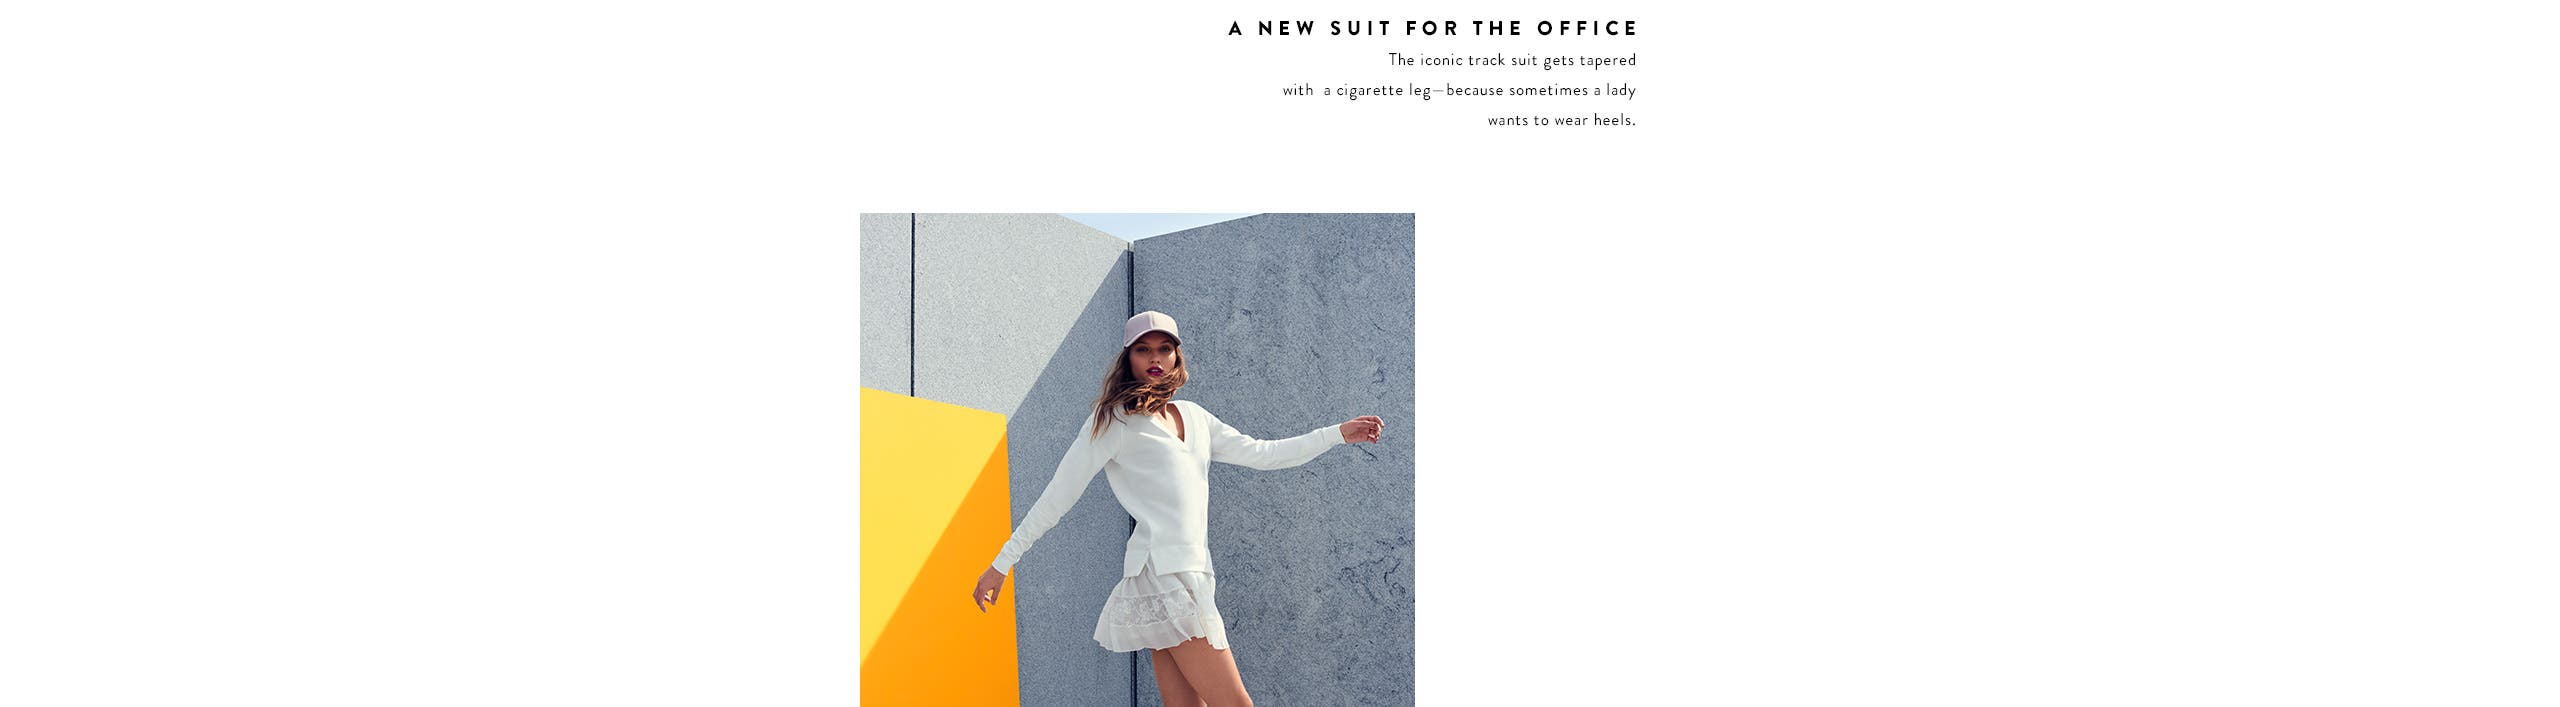 Athleisure clothing and shoes for women.